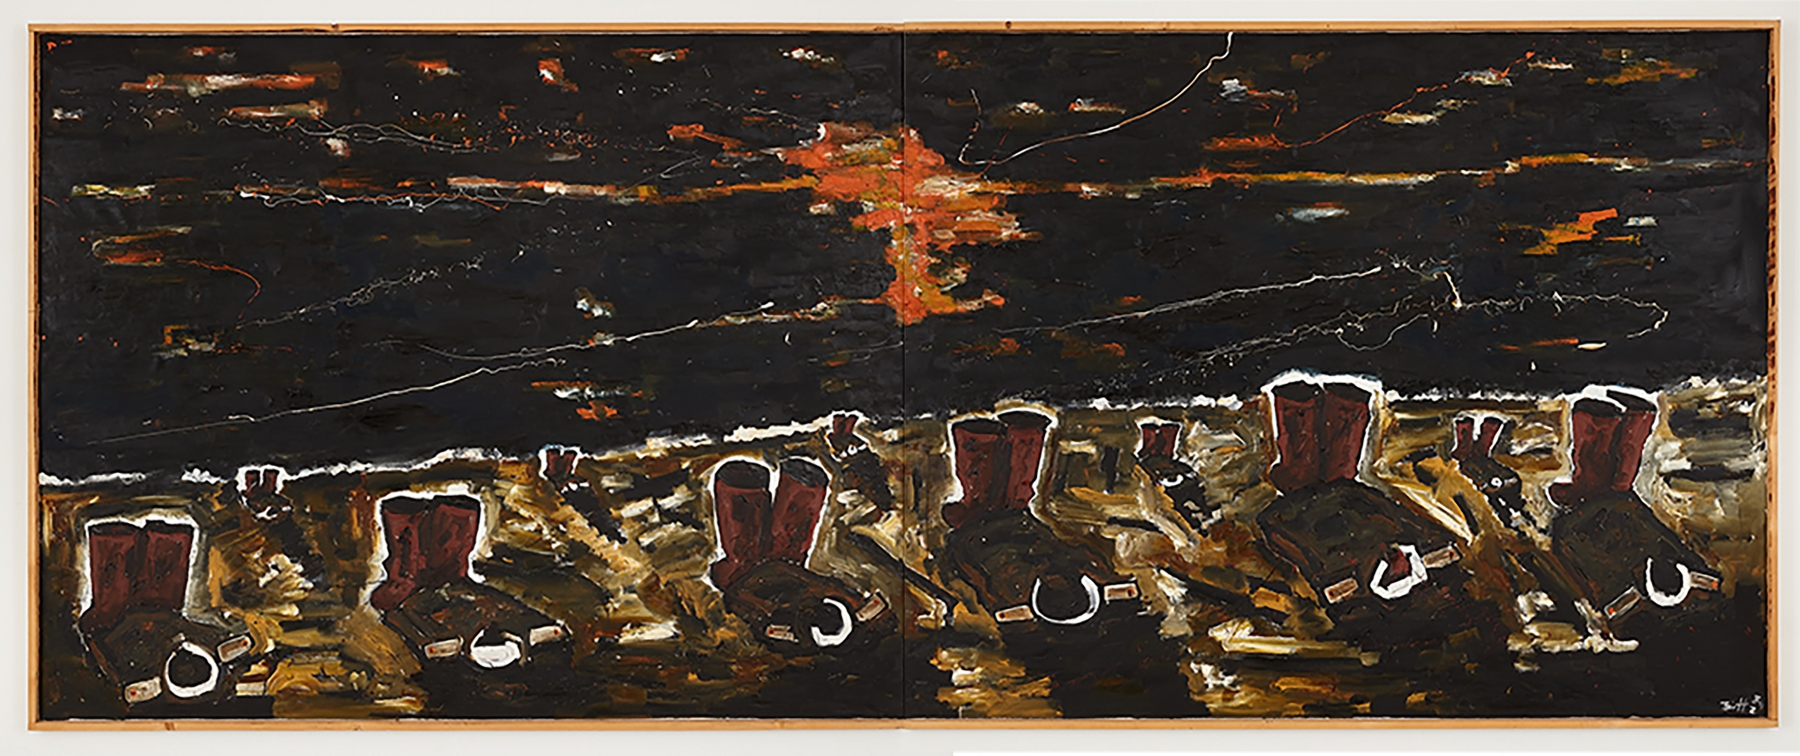 Horizontal oil on canvas painting by Werner Büttner featuring a row of six brown boots against a black and orange background